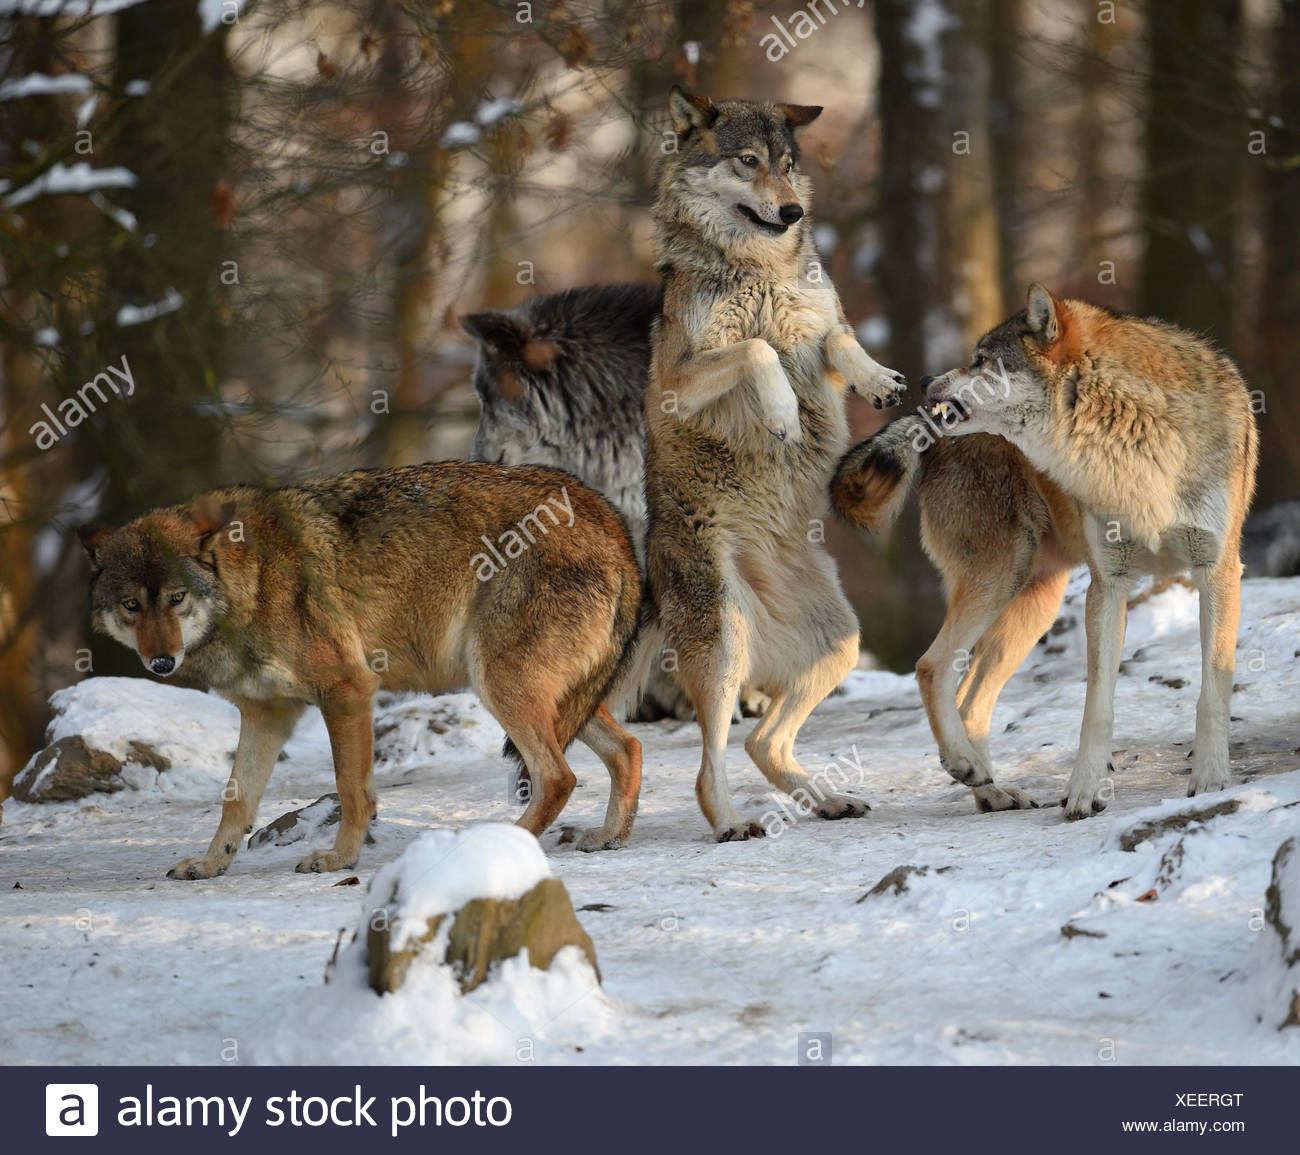 Reproof, ranking, domination, Northwestern wolf (Canis lupus occidentalis) in the snow, captive, Baden-Württemberg, Germany - Stock Image